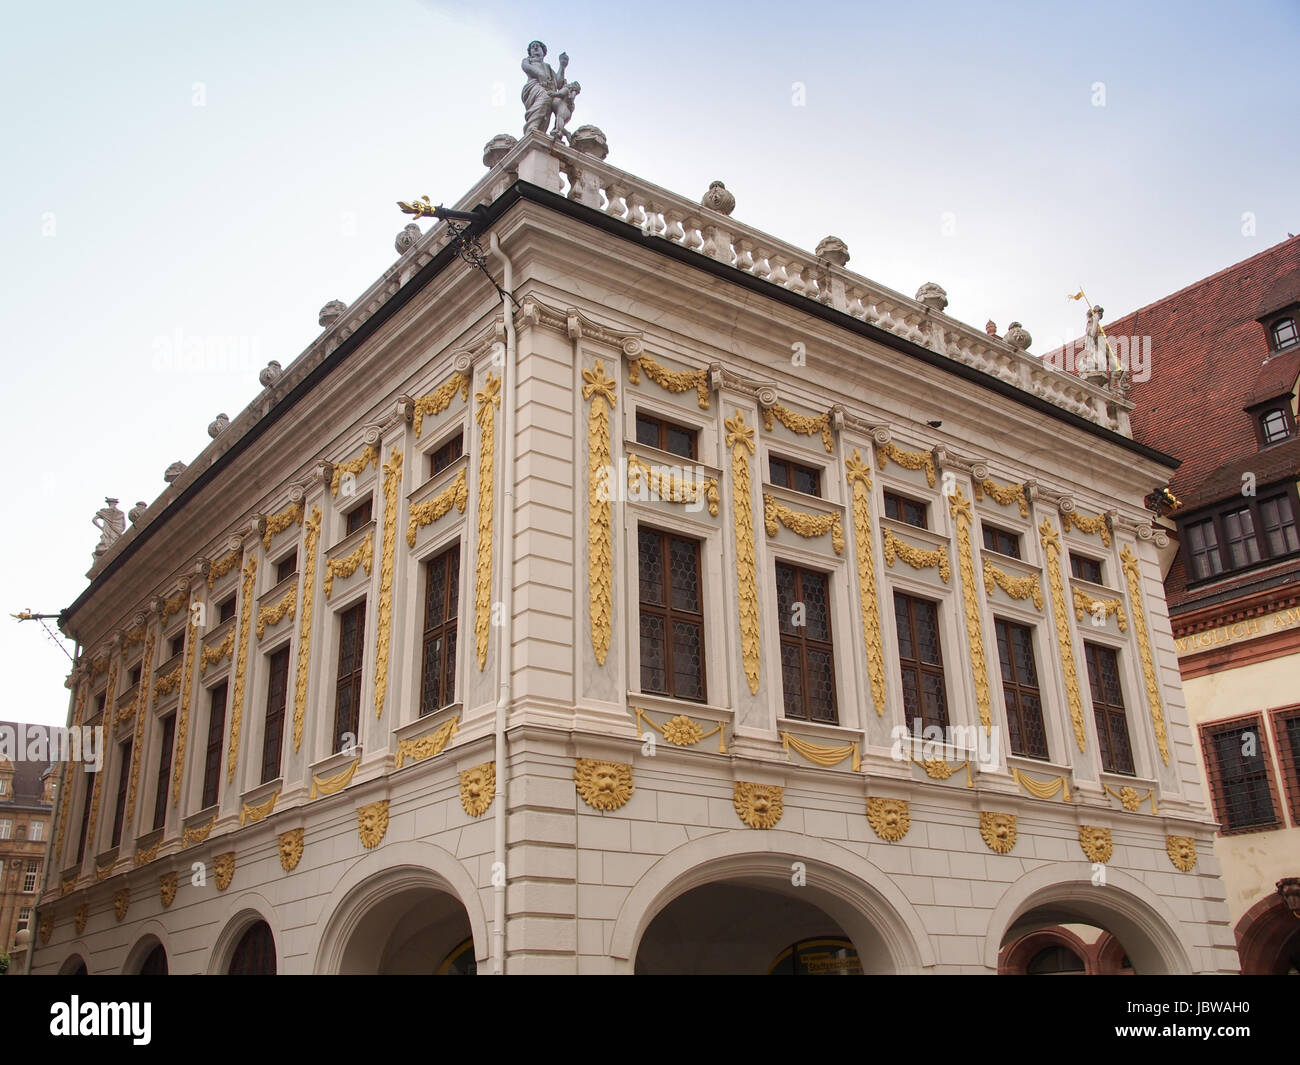 The Alte Handelsboerse meaning Old Stock Exchange is one of the oldest baroque buildings in Leipzig Germany Stock Photo